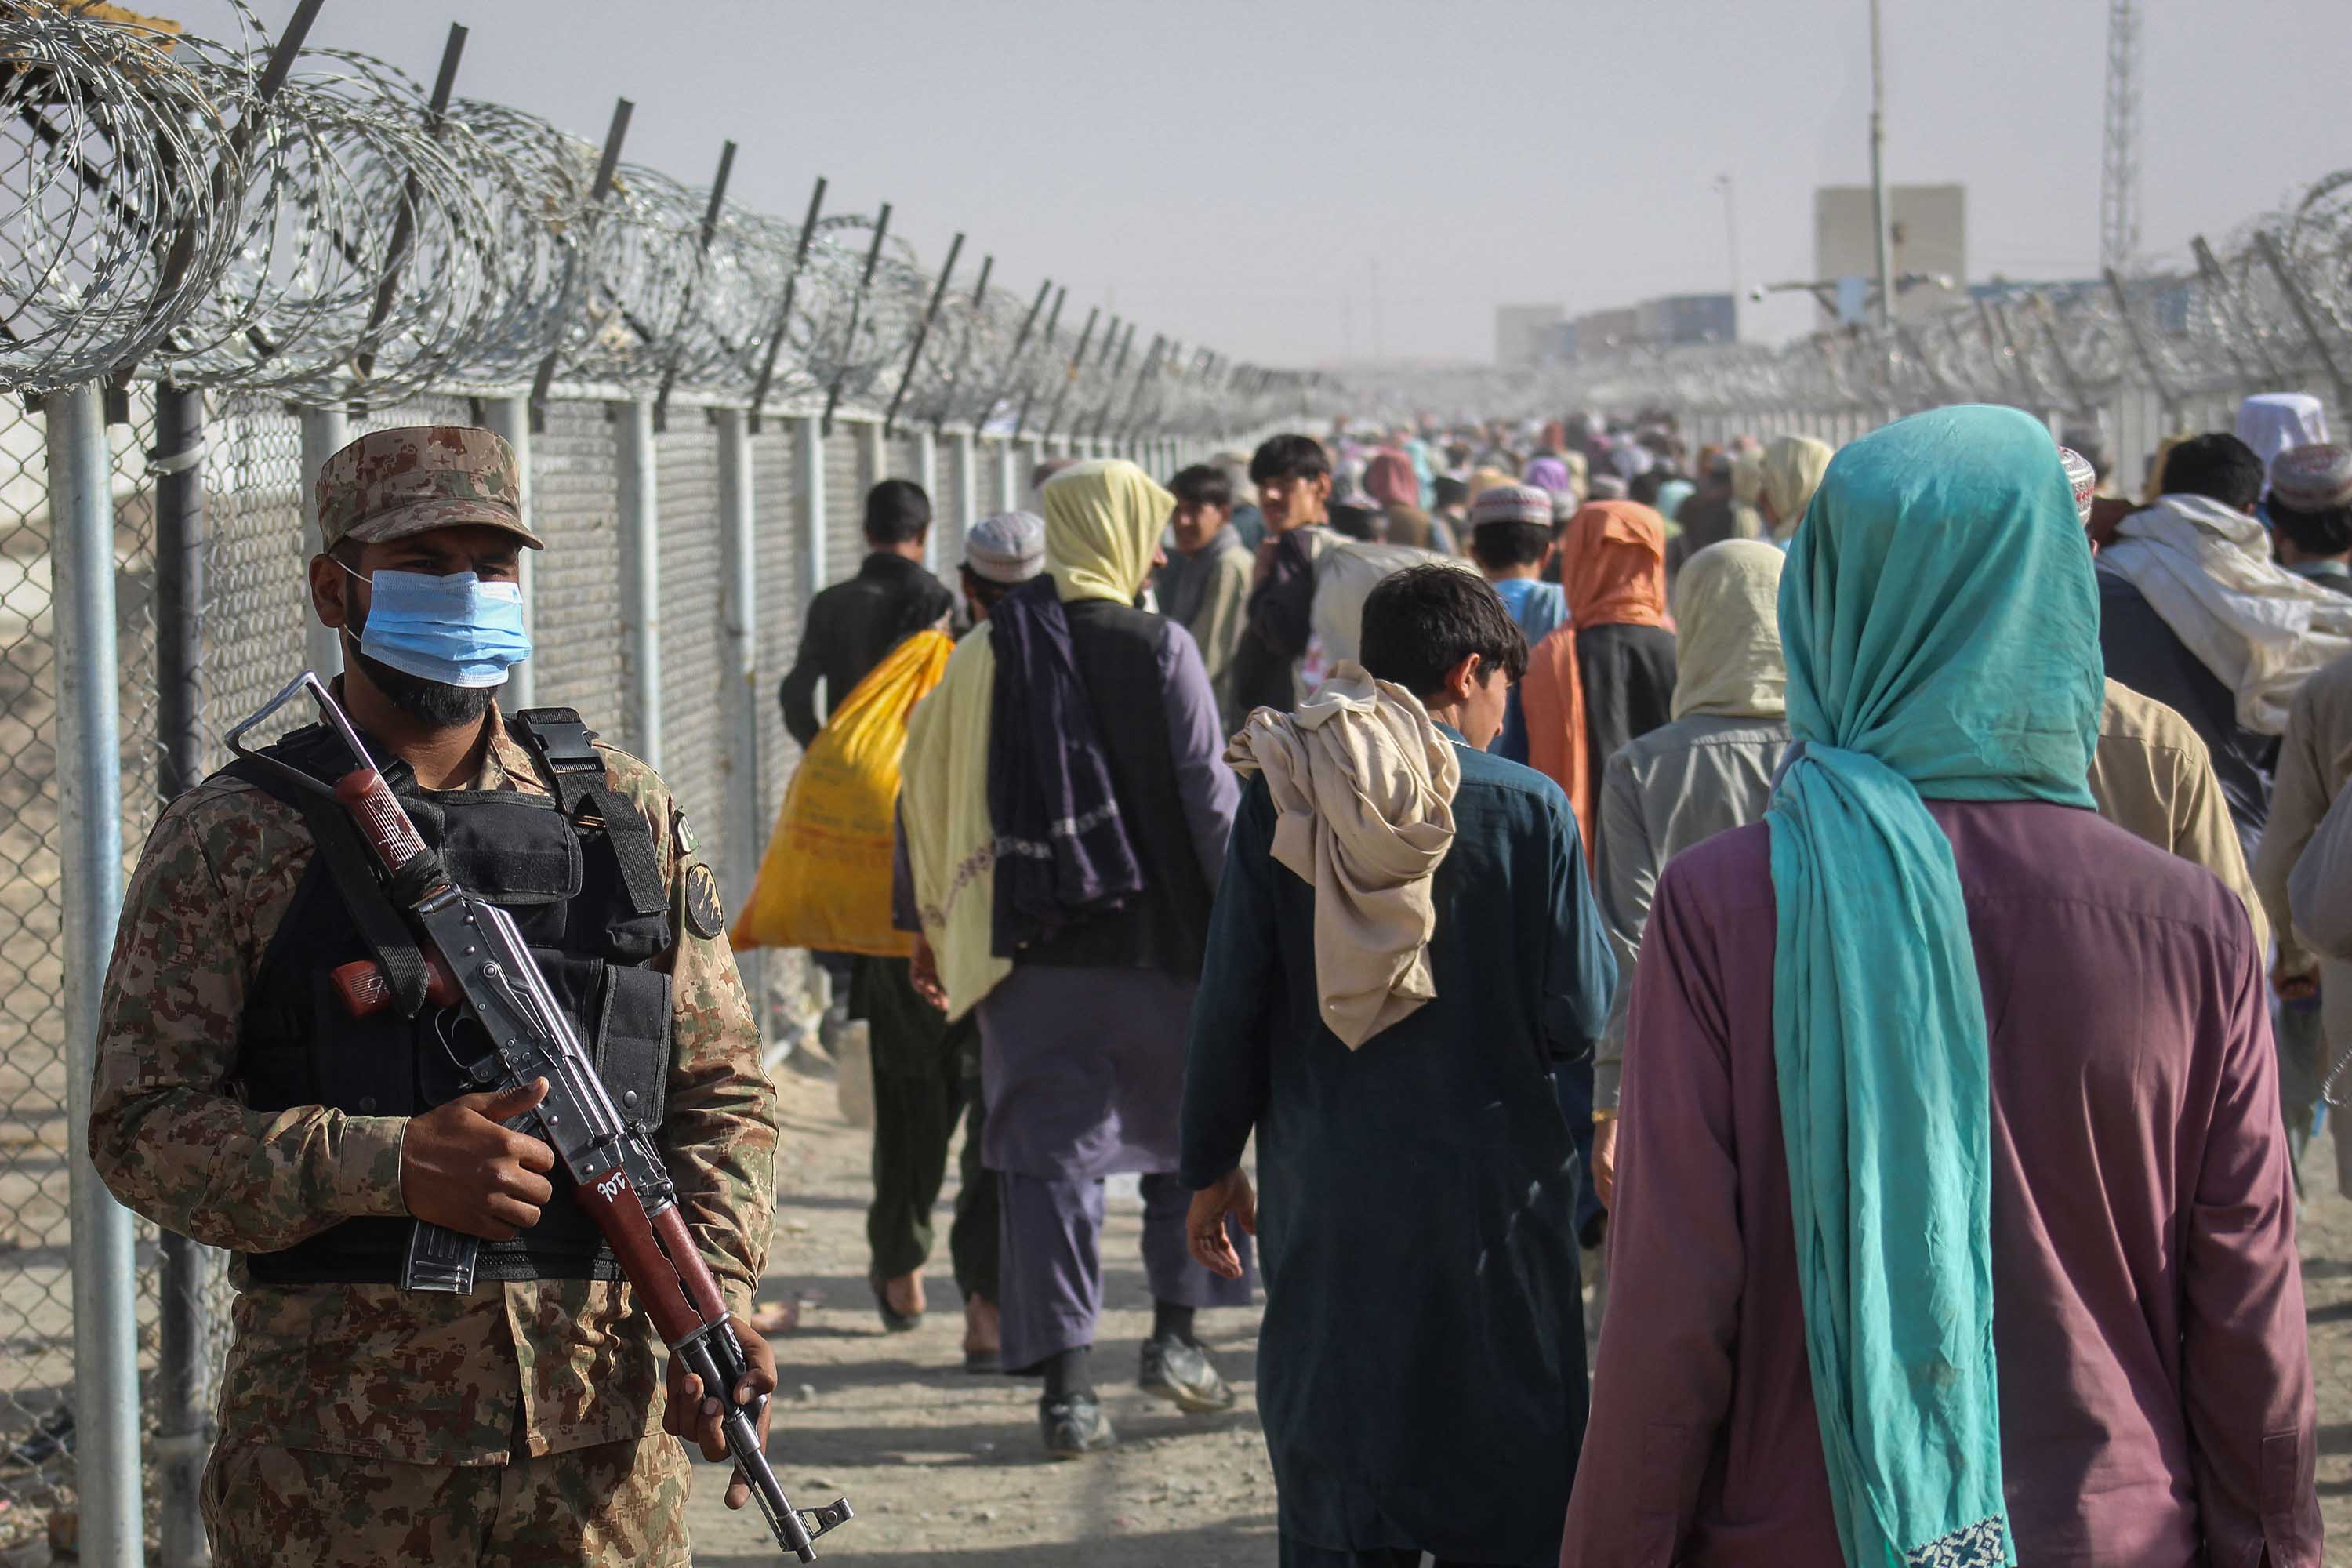 A Pakistani soldier stands guard as Afghans arrive in Pakistan through the Pakistan-Afghanistan border crossing point in Chaman, Pakistan, on August 26.